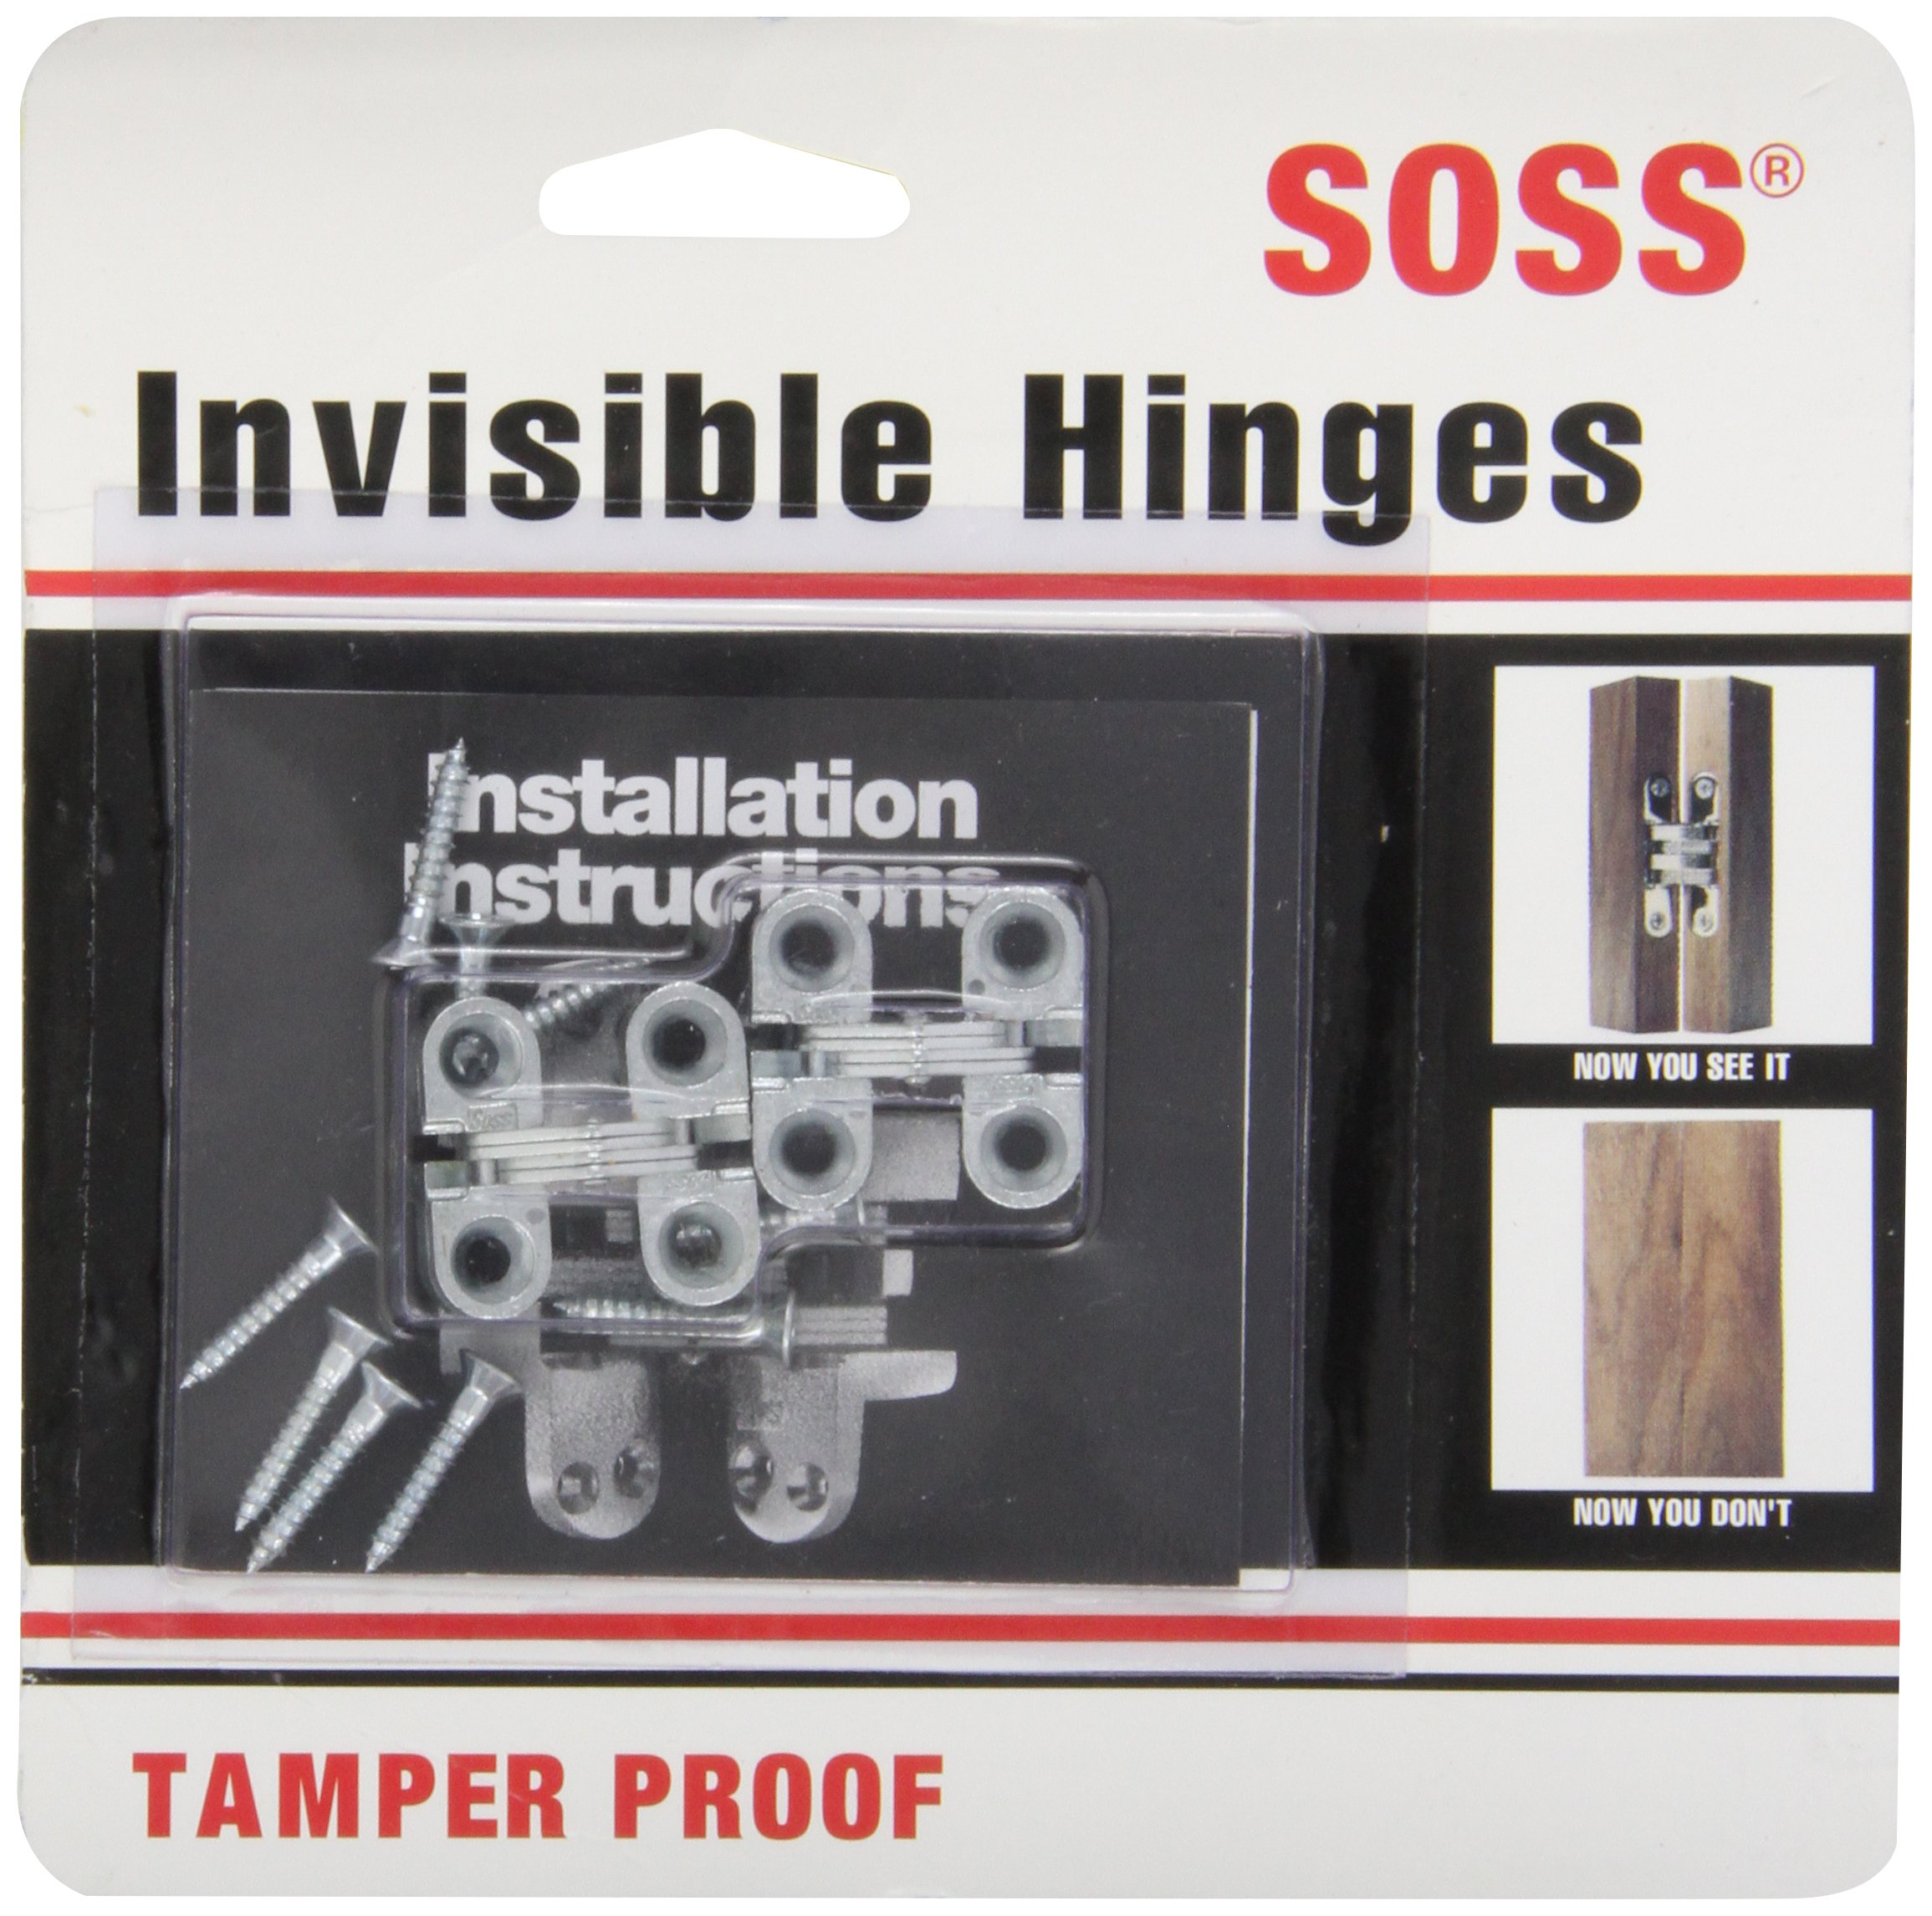 SOSS Mortise Mount Invisible Hinges with 4 Holes, Zinc, Satin Chrome Finish, 1'' Leaf Height, 3/8'' Leaf Width, 15/32'' Leaf Thickness, #5 x 3/4'' Screw Size (1 Pair)